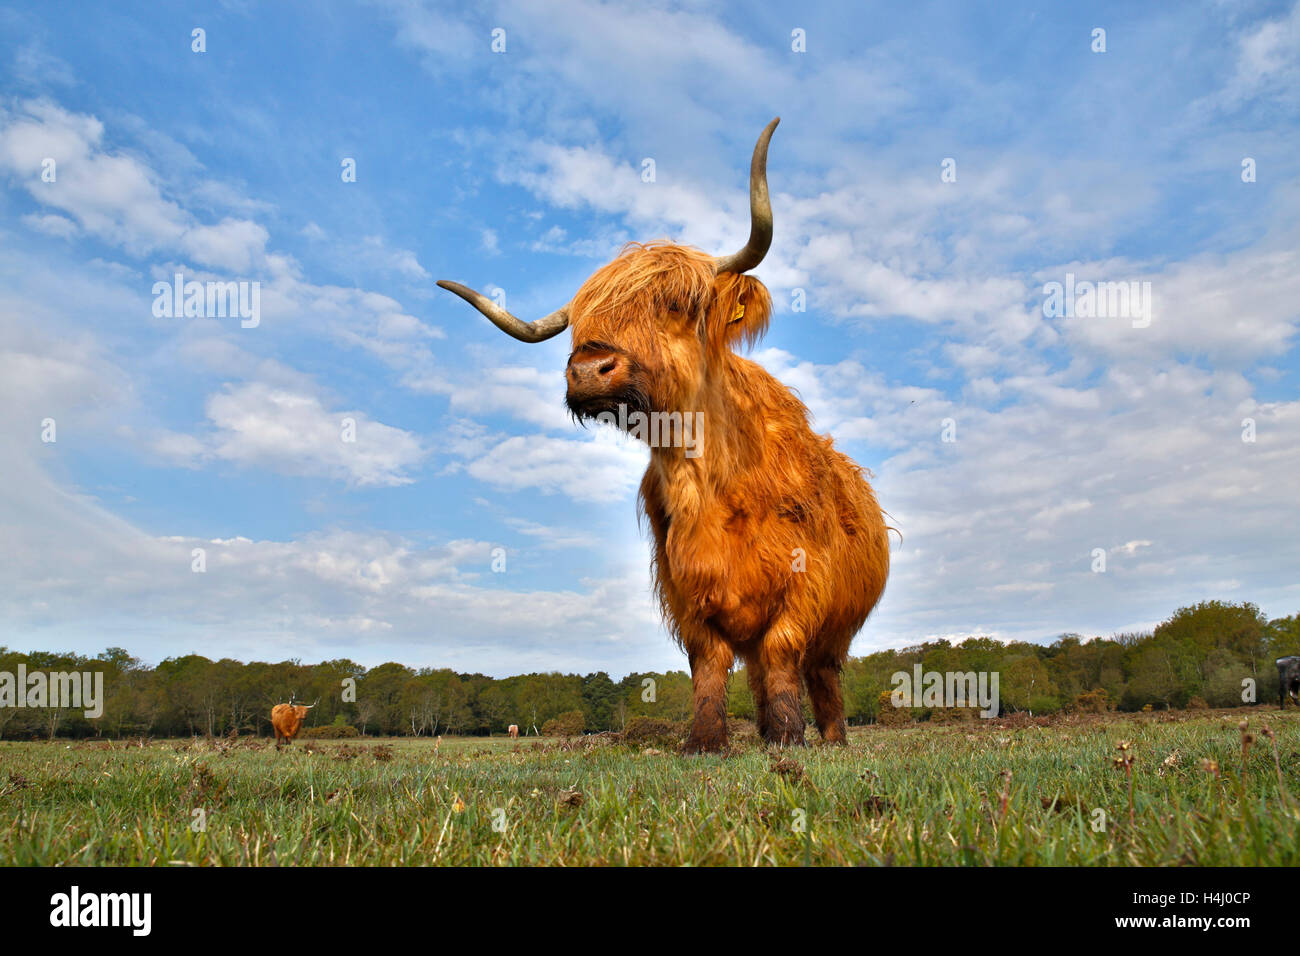 Highland Cow New Forest; UK - Stock Image